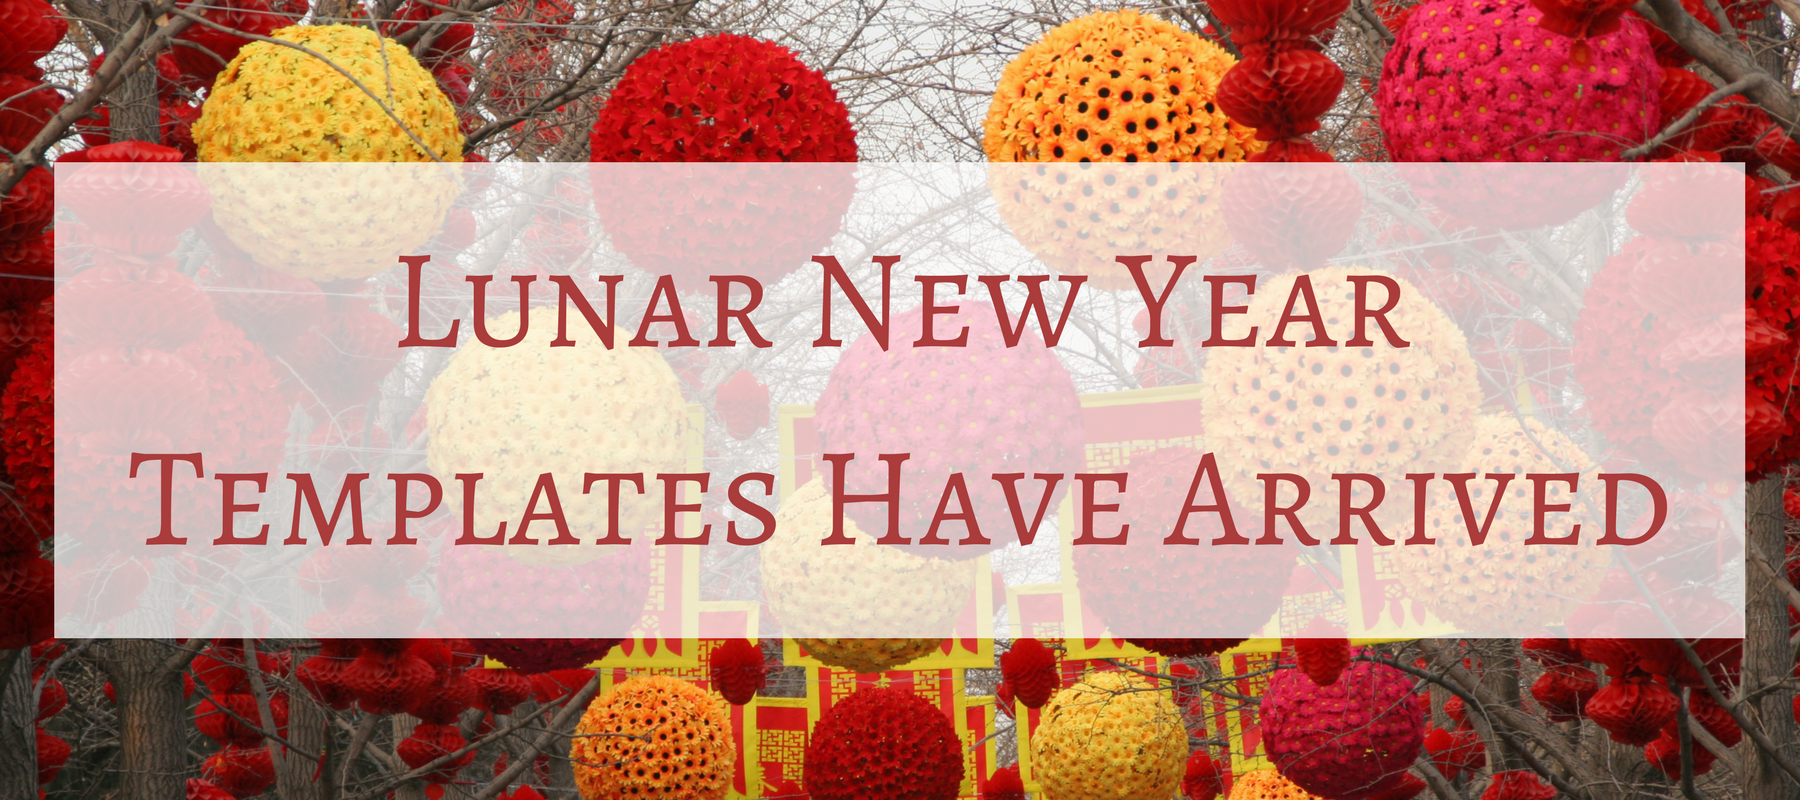 Lunar New Year Templates Have Arrived-1